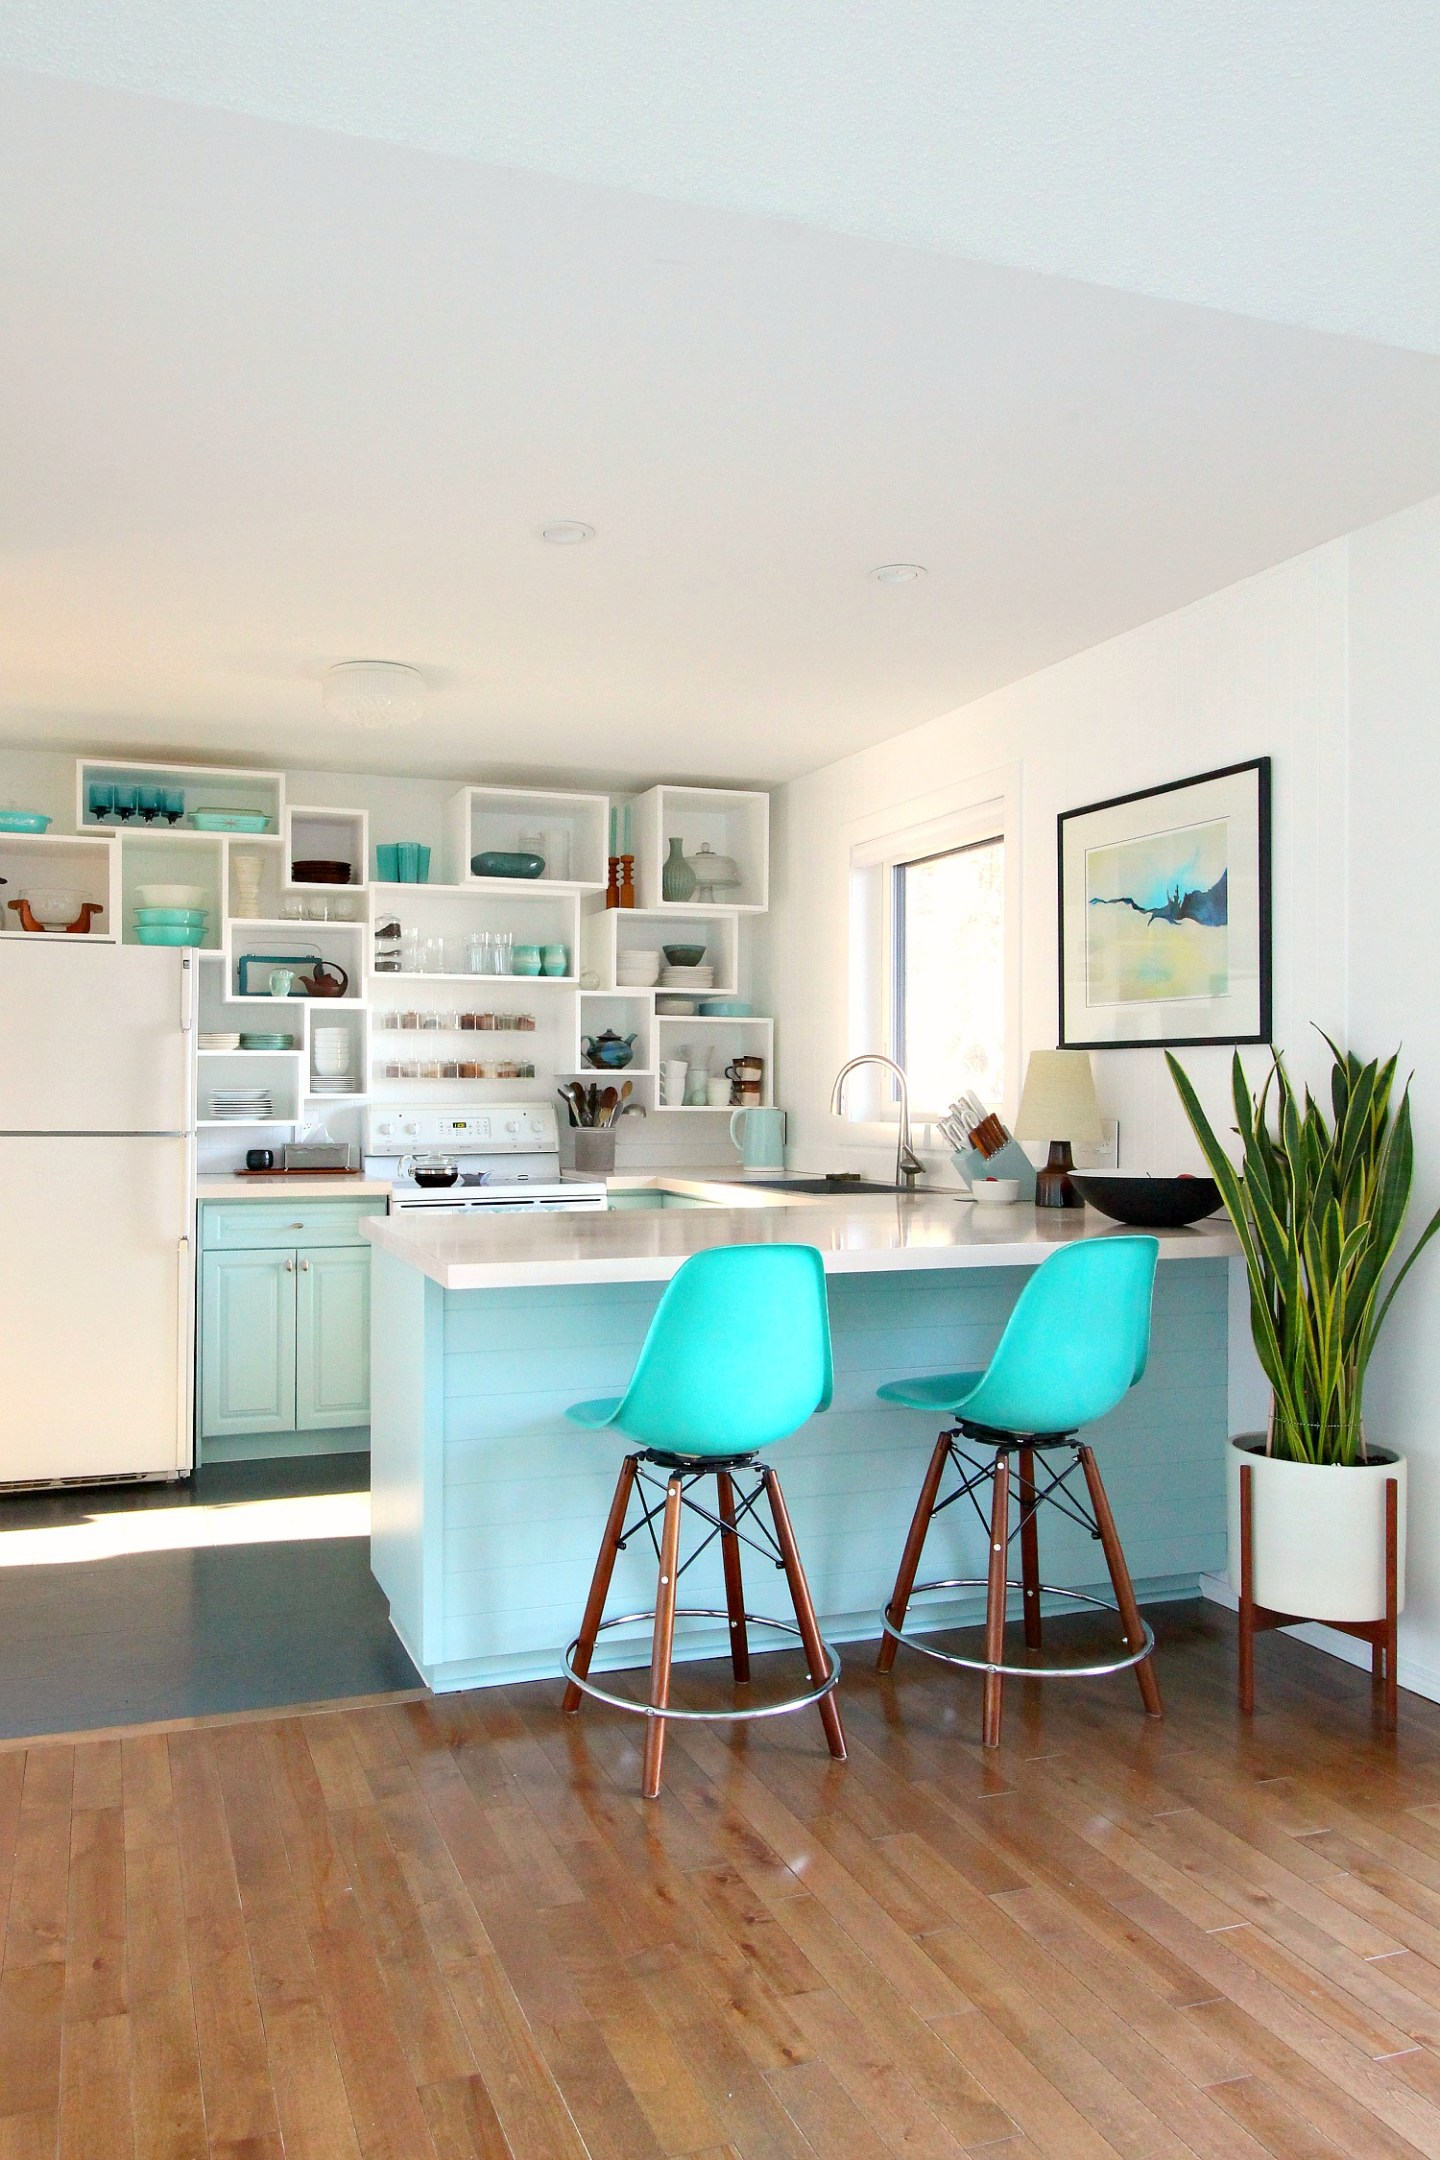 DIY Budget Friendly Coastal Kitchen with Sherwin Williams Watery Cabinets